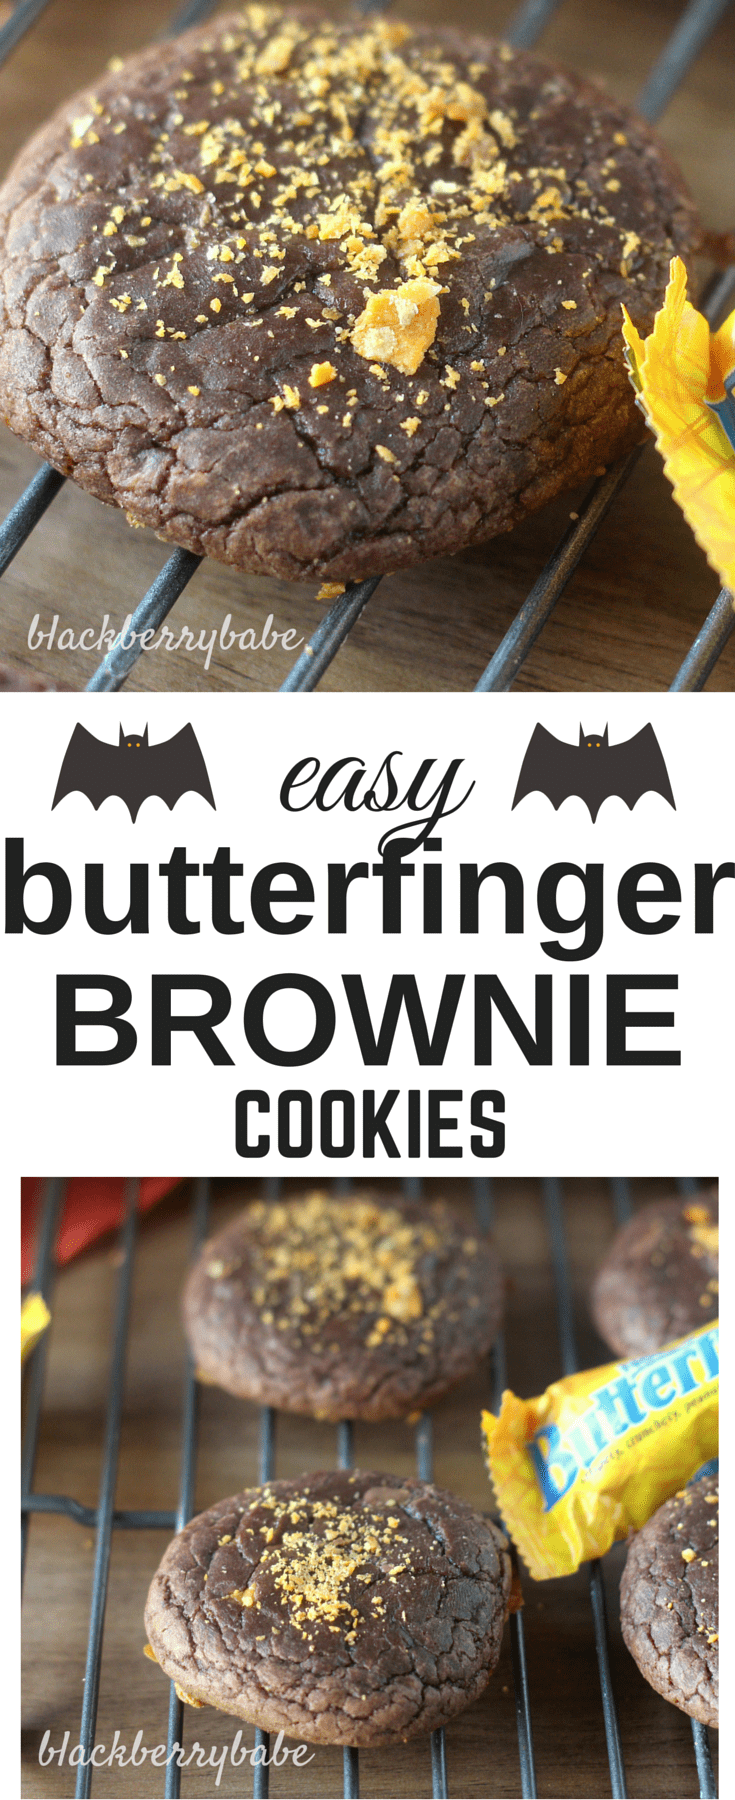 easy butterfinger brownie cookies perfect for leftover halloween candy or your halloween party